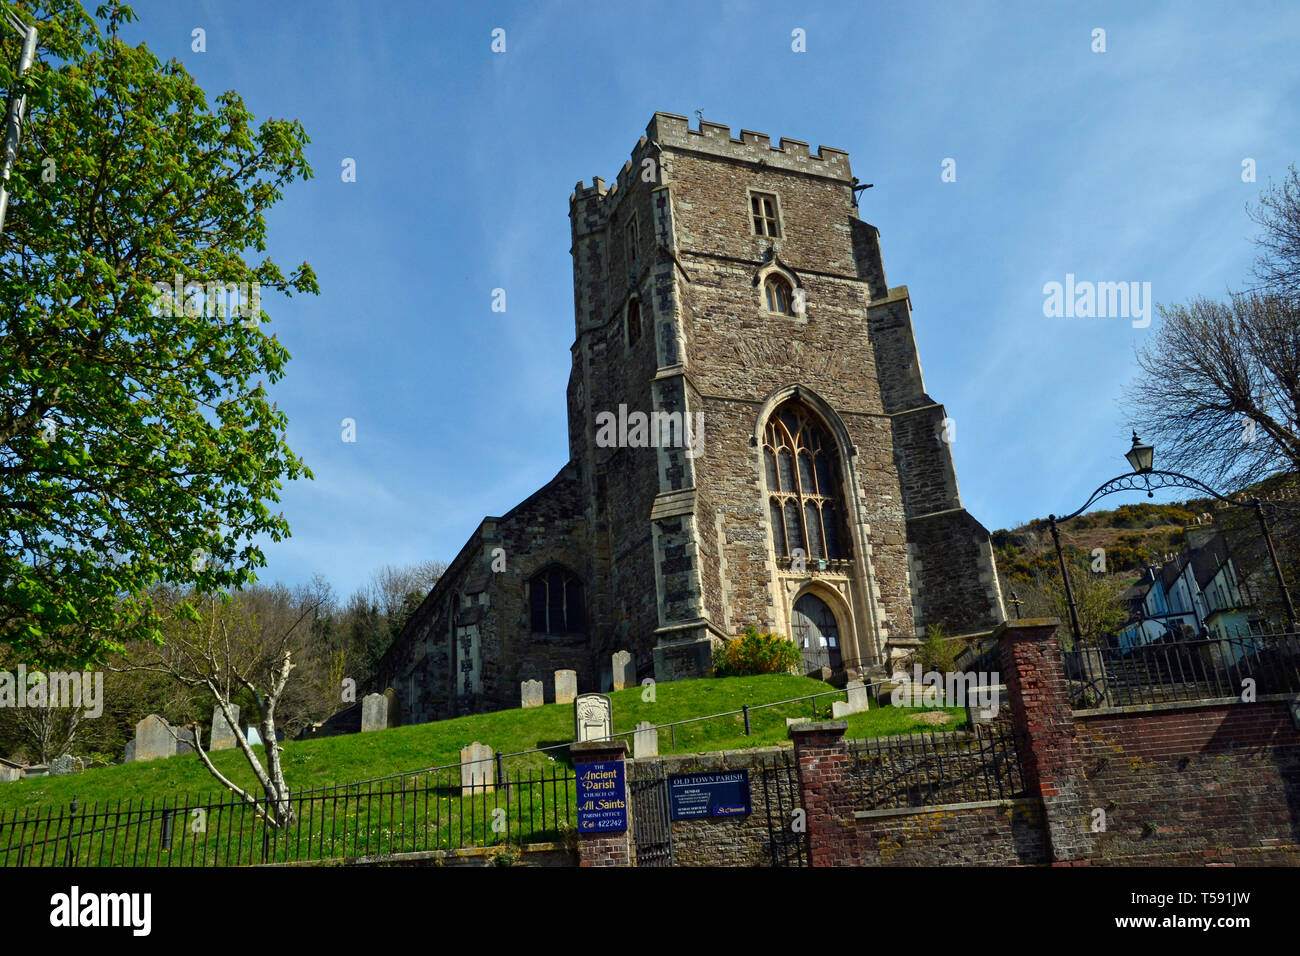 All Saints Church, Hastings, East Sussex, UK Stock Photo